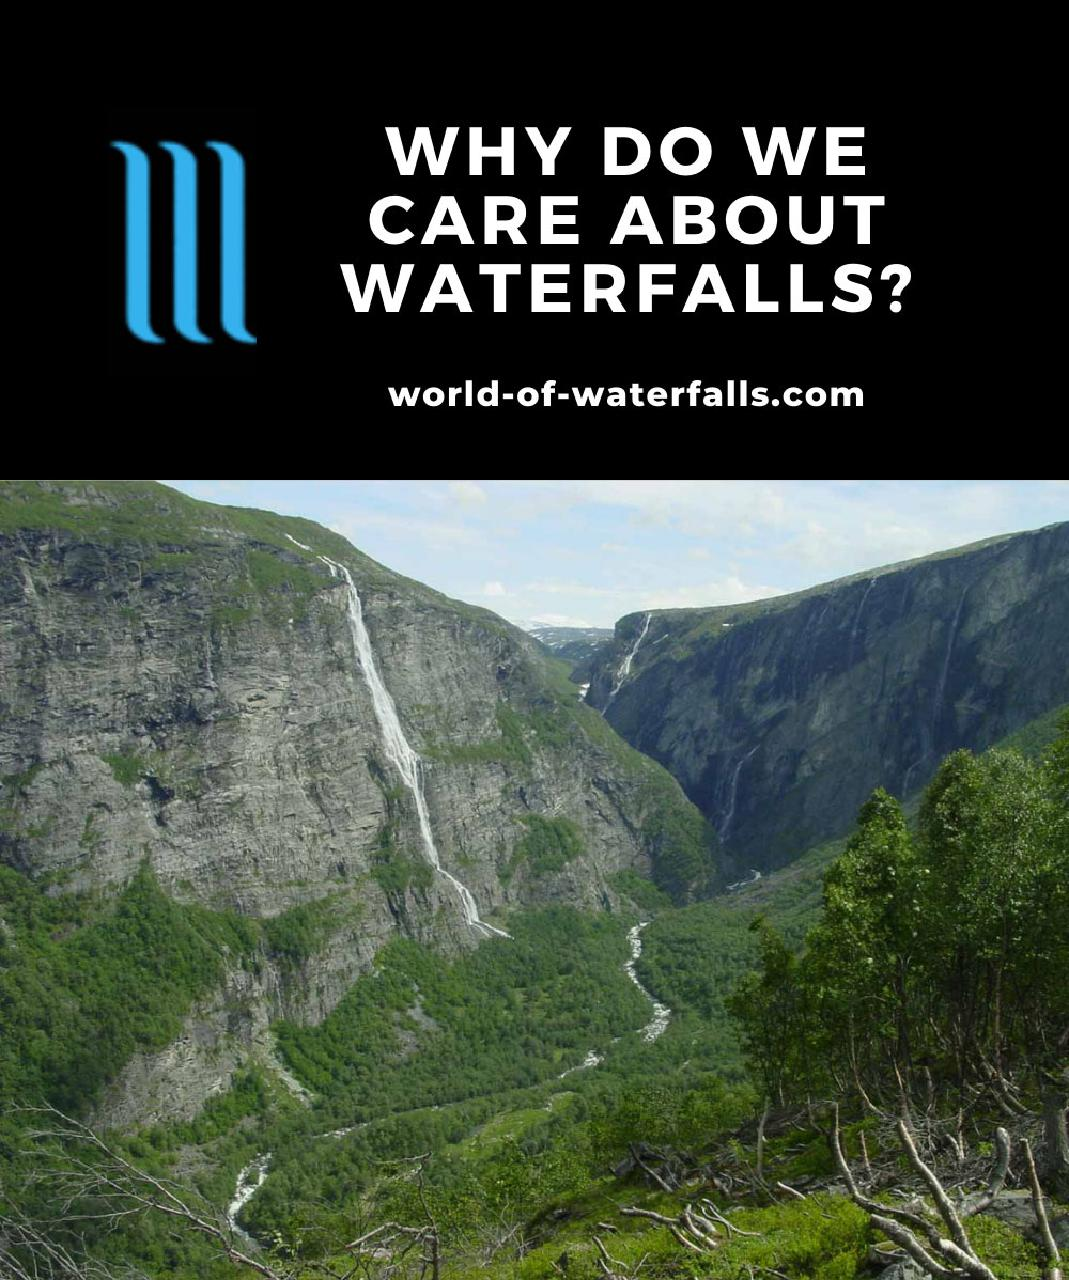 Why Do We Care About Waterfalls?